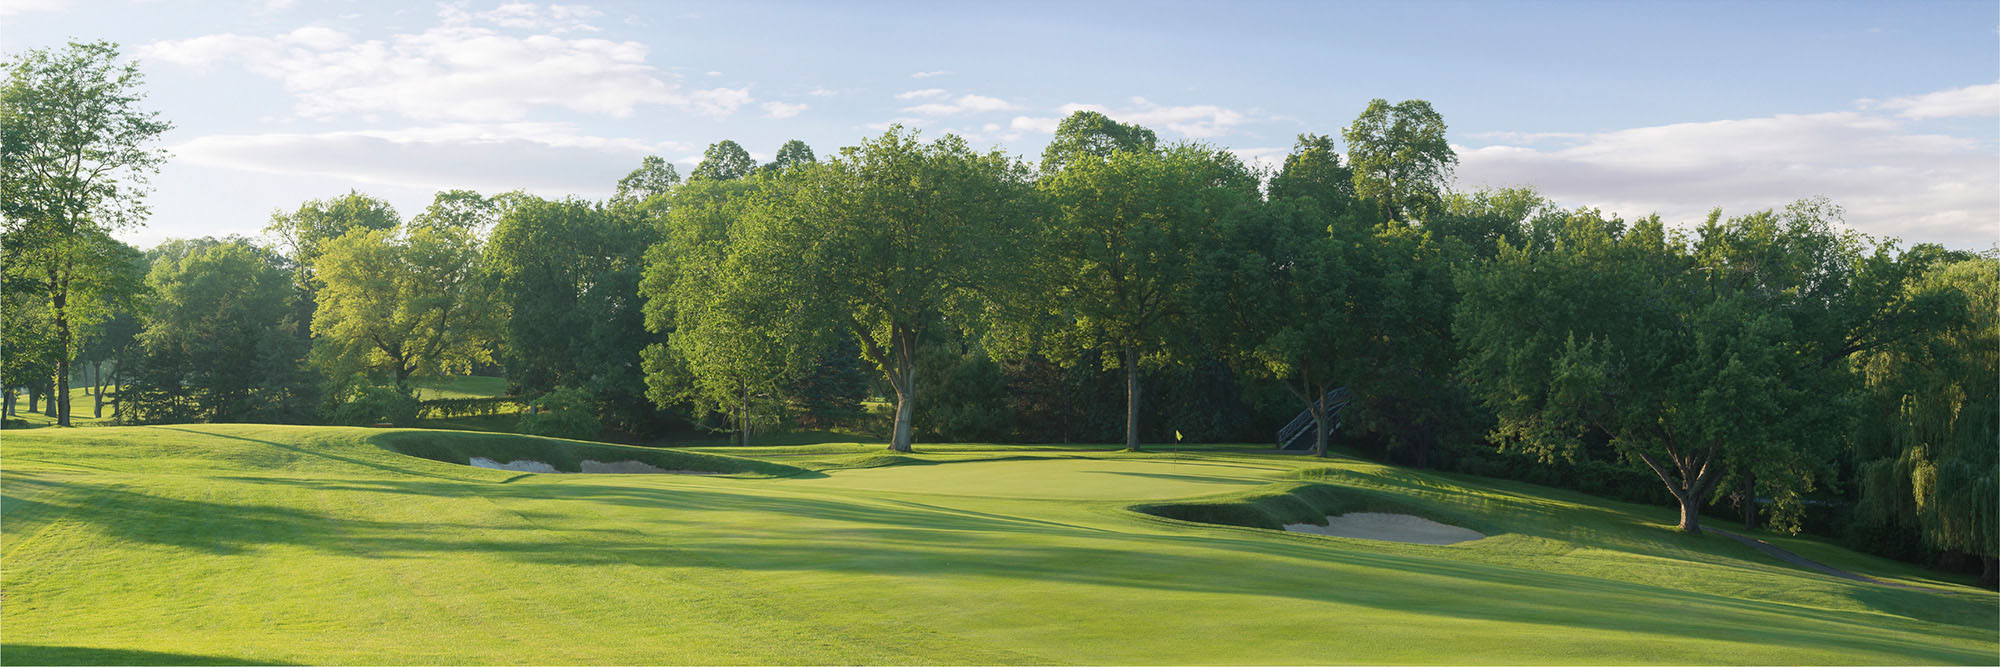 Golf Course Image - Interlachen No. 17